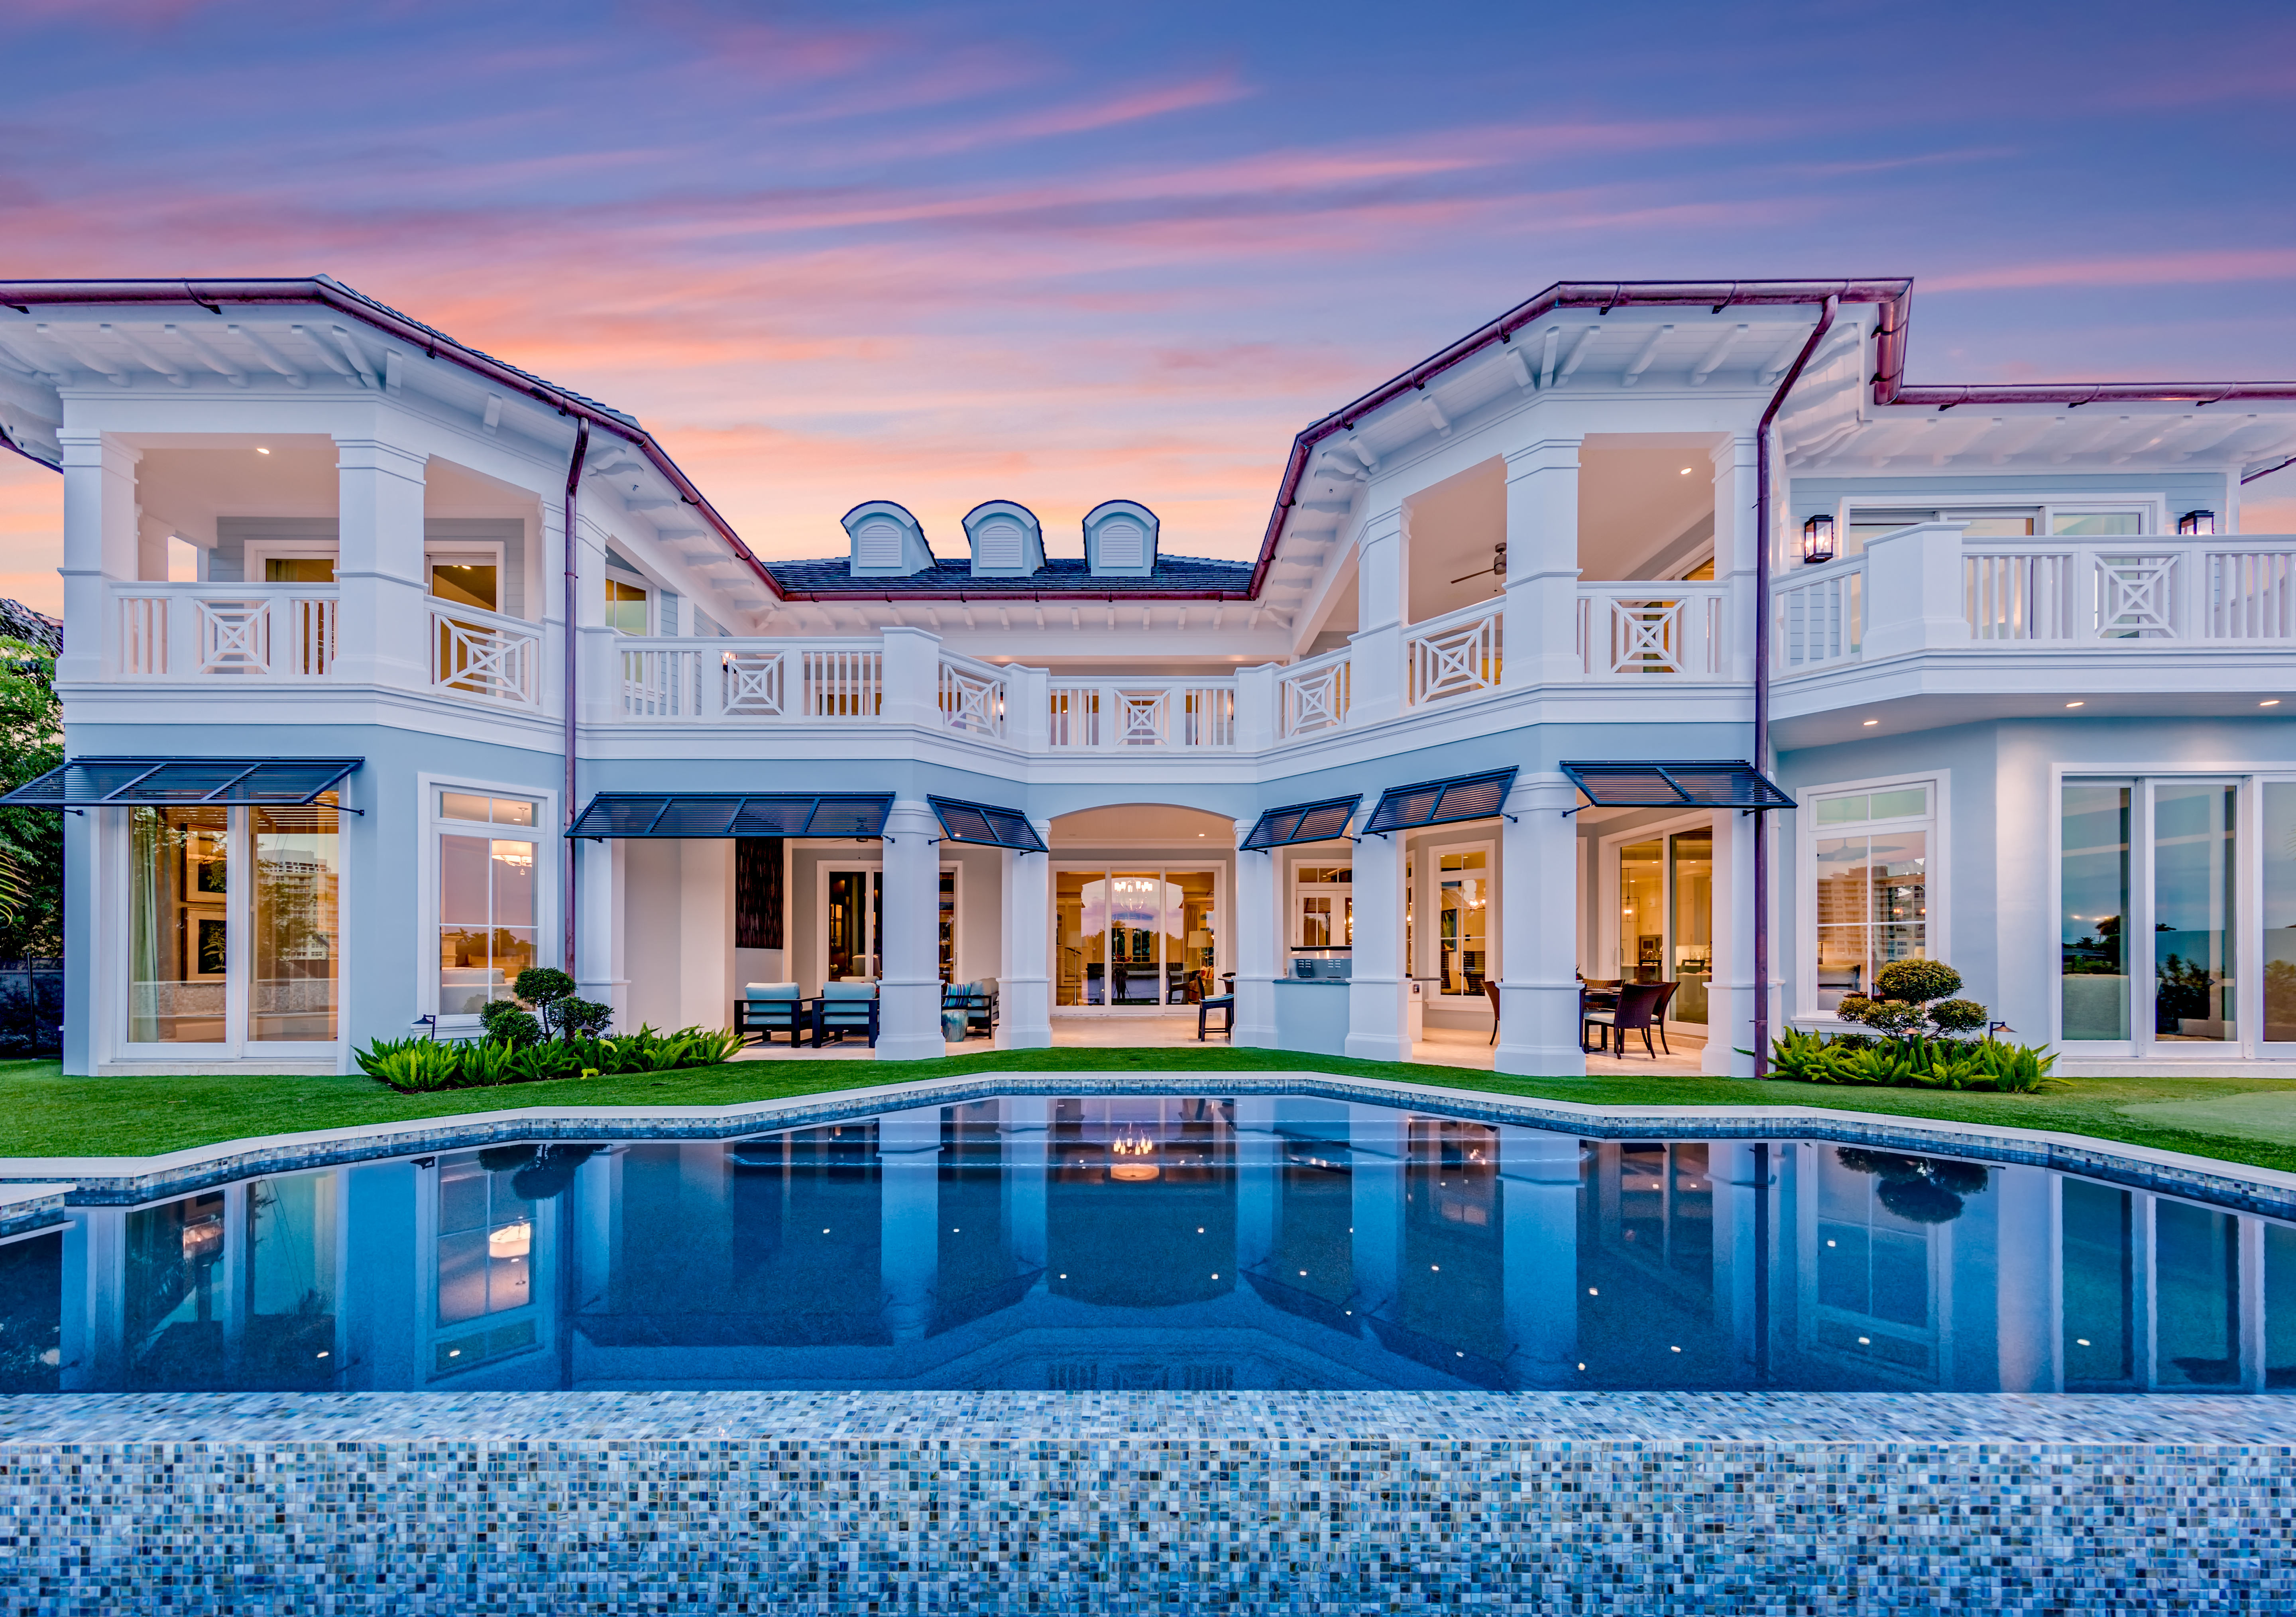 A magnificent mansion in fort lauderdale with the sun setting in the background and an infinity pool in the foreground